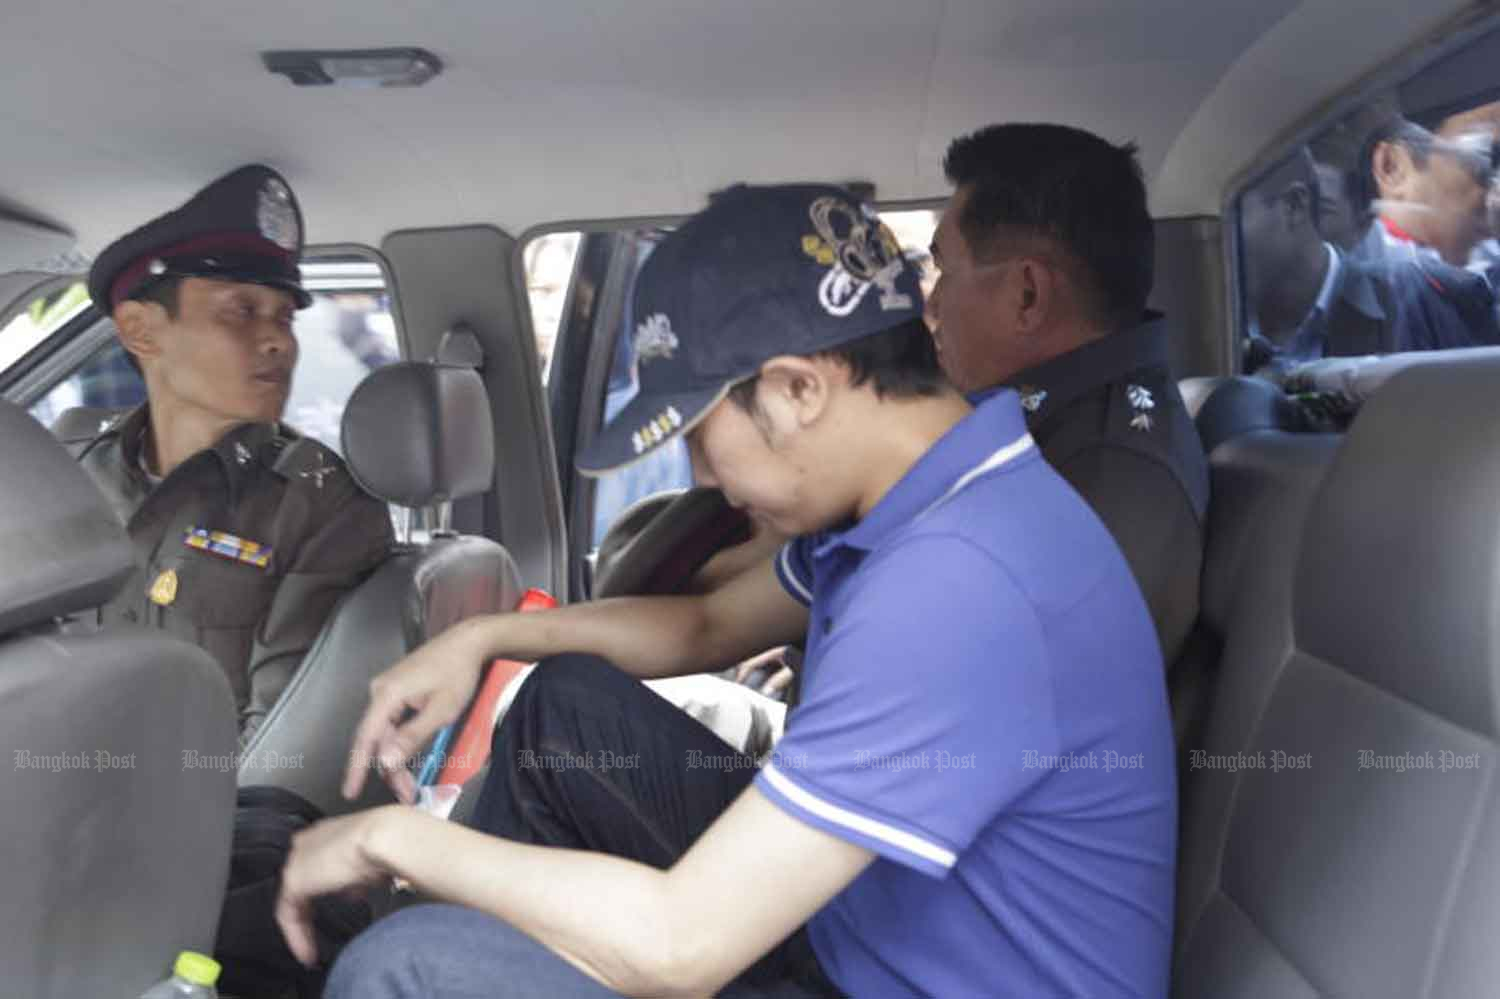 Vorayuth Yoovidhya is escorted to the Thong Lor police station in Bangkok for interrogation, hours after a crash that killed a police officer on Sept 3, 2012. (Photo: Kosol Nakachol)